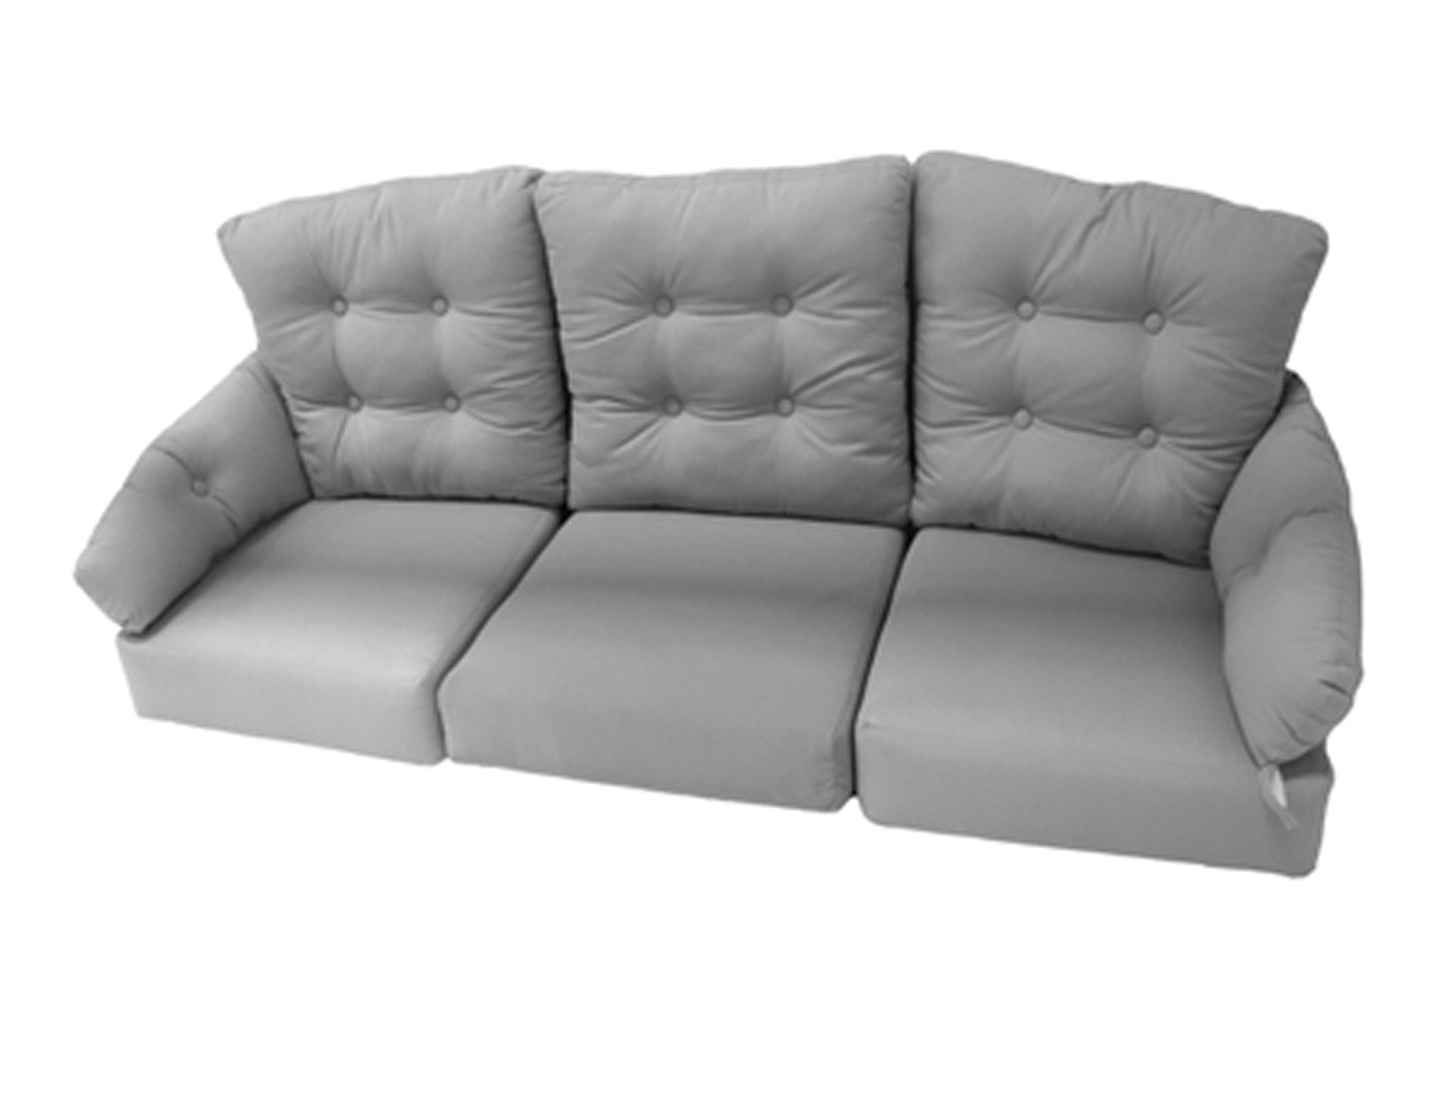 Back Cushions For Couch